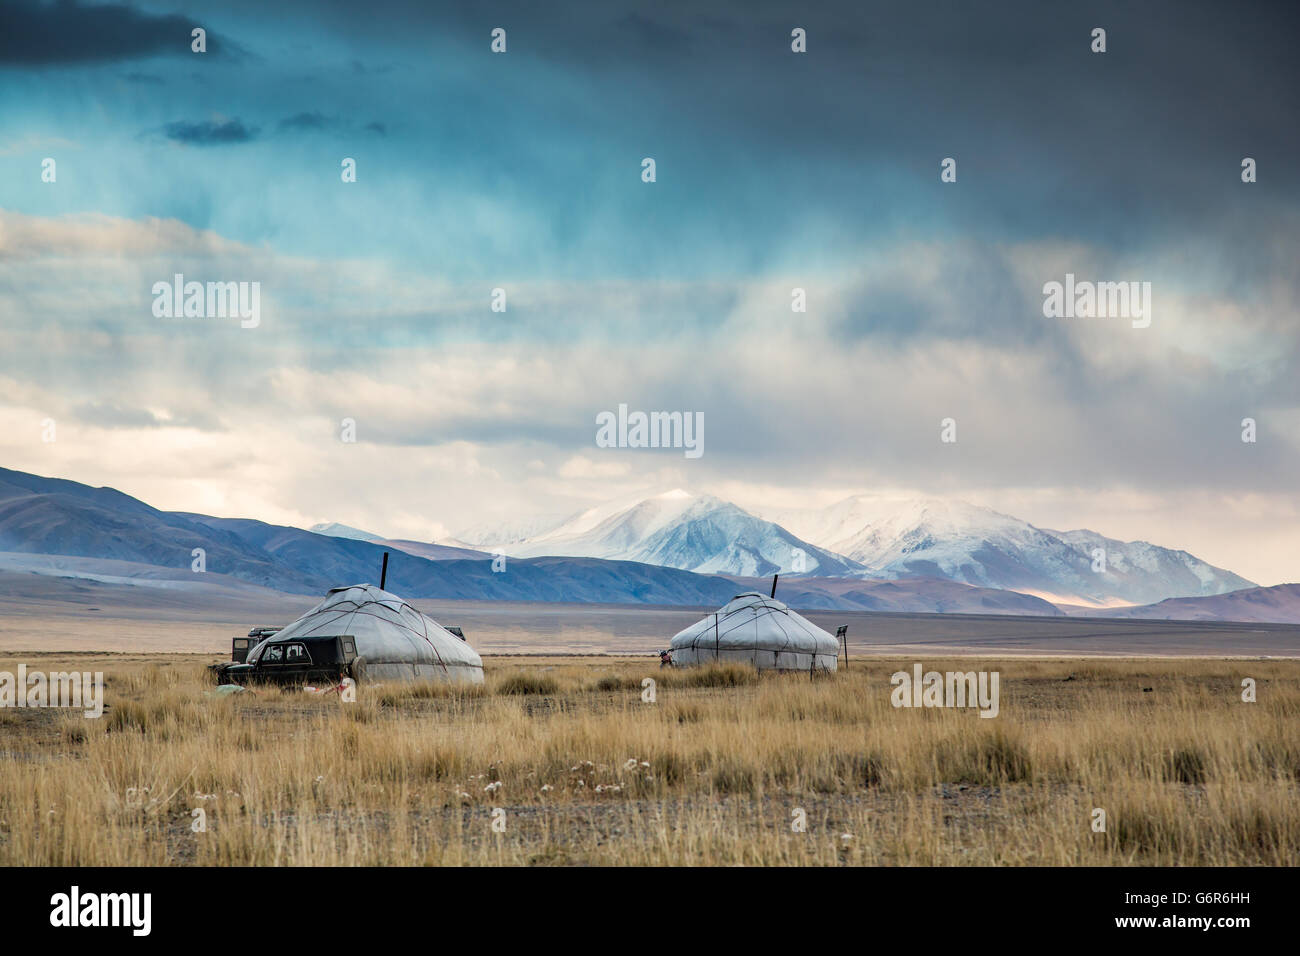 two yurts in a landscape of western Mongolia with snowy mountains at the backgrounds - Stock Image